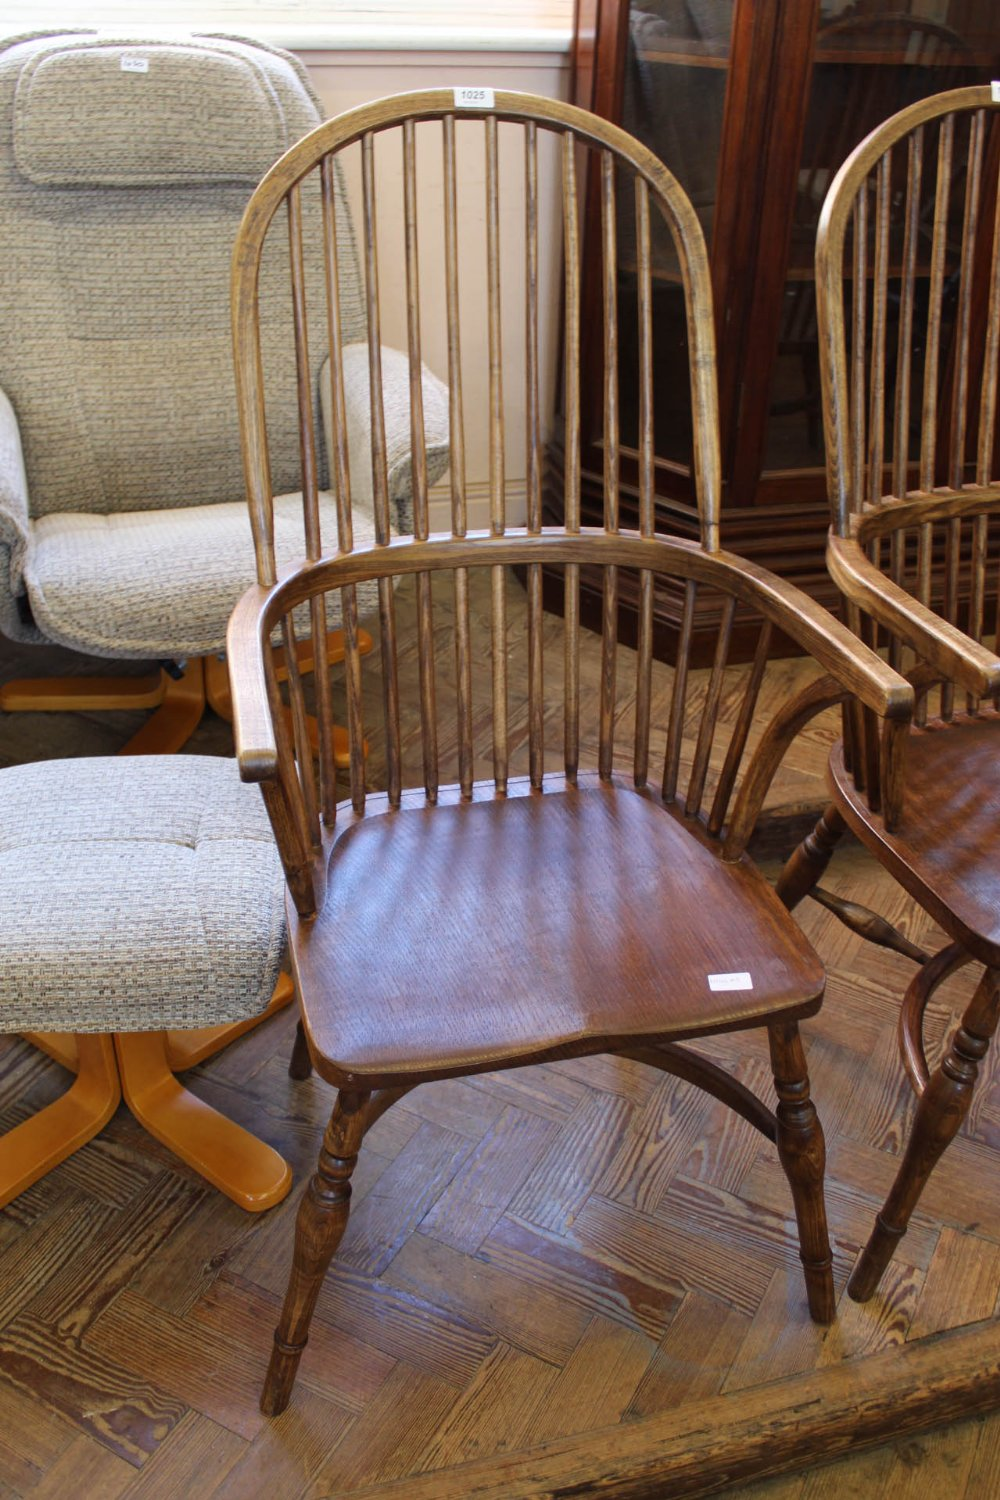 Lot 1025 - A traditionally locally crafted Windsor chair individually hand made from native hardwoods